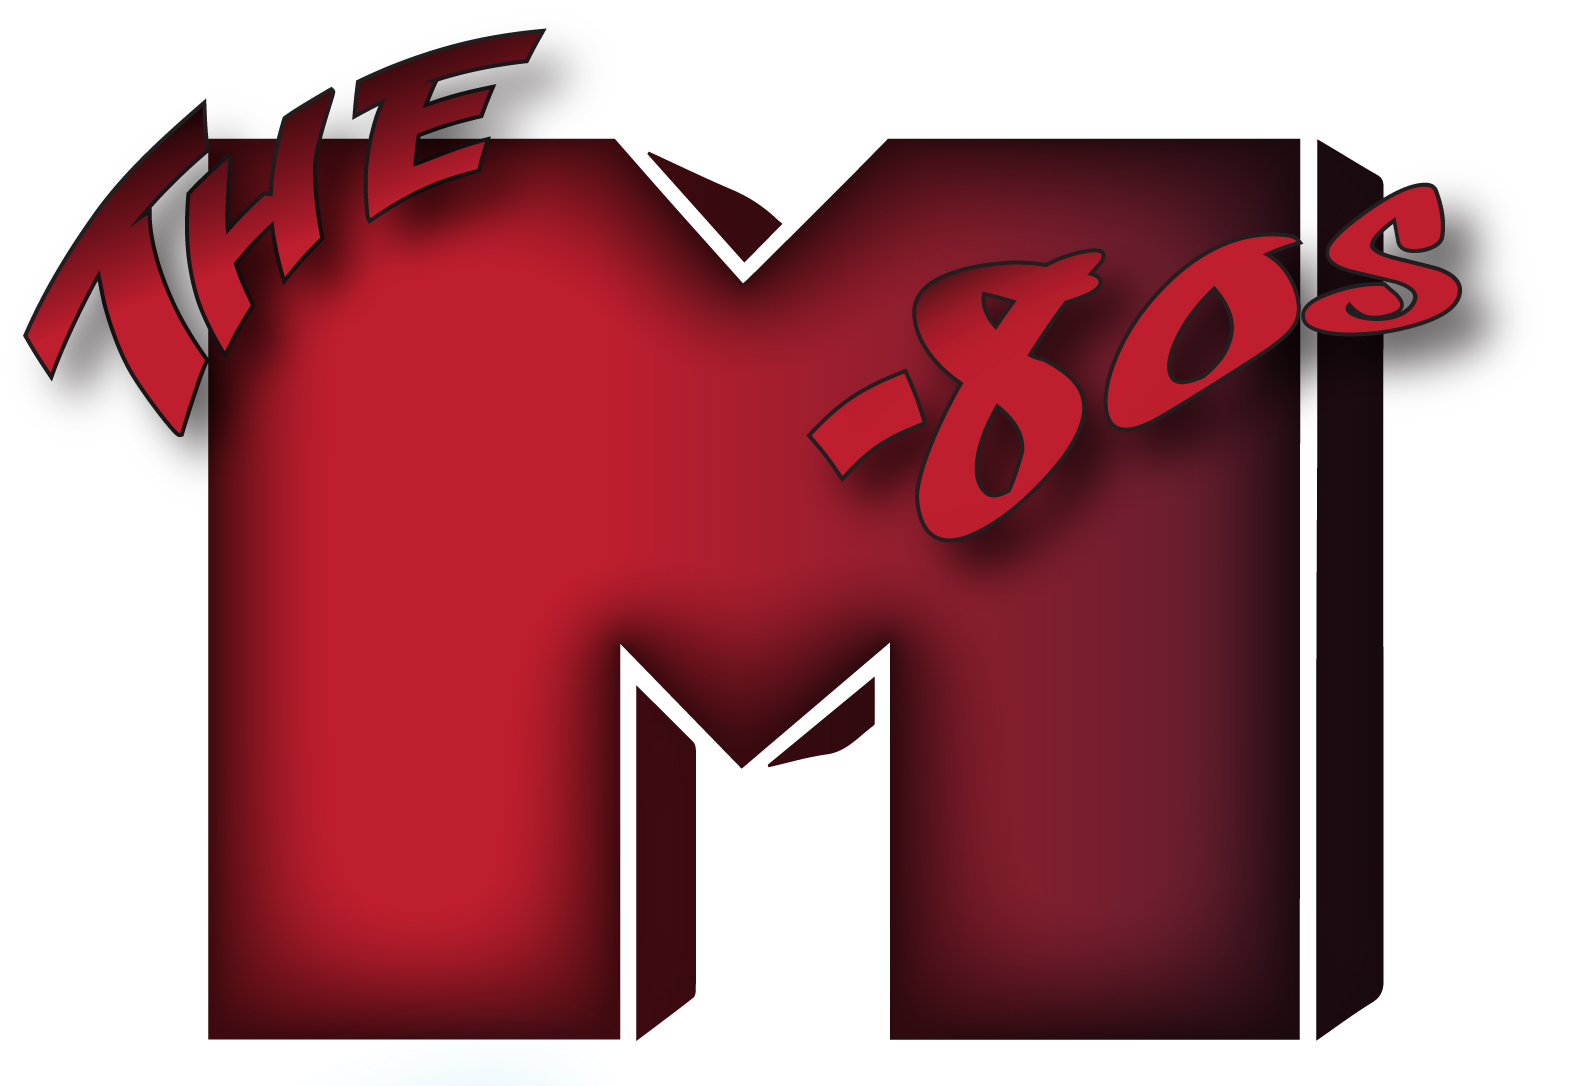 The M-80s